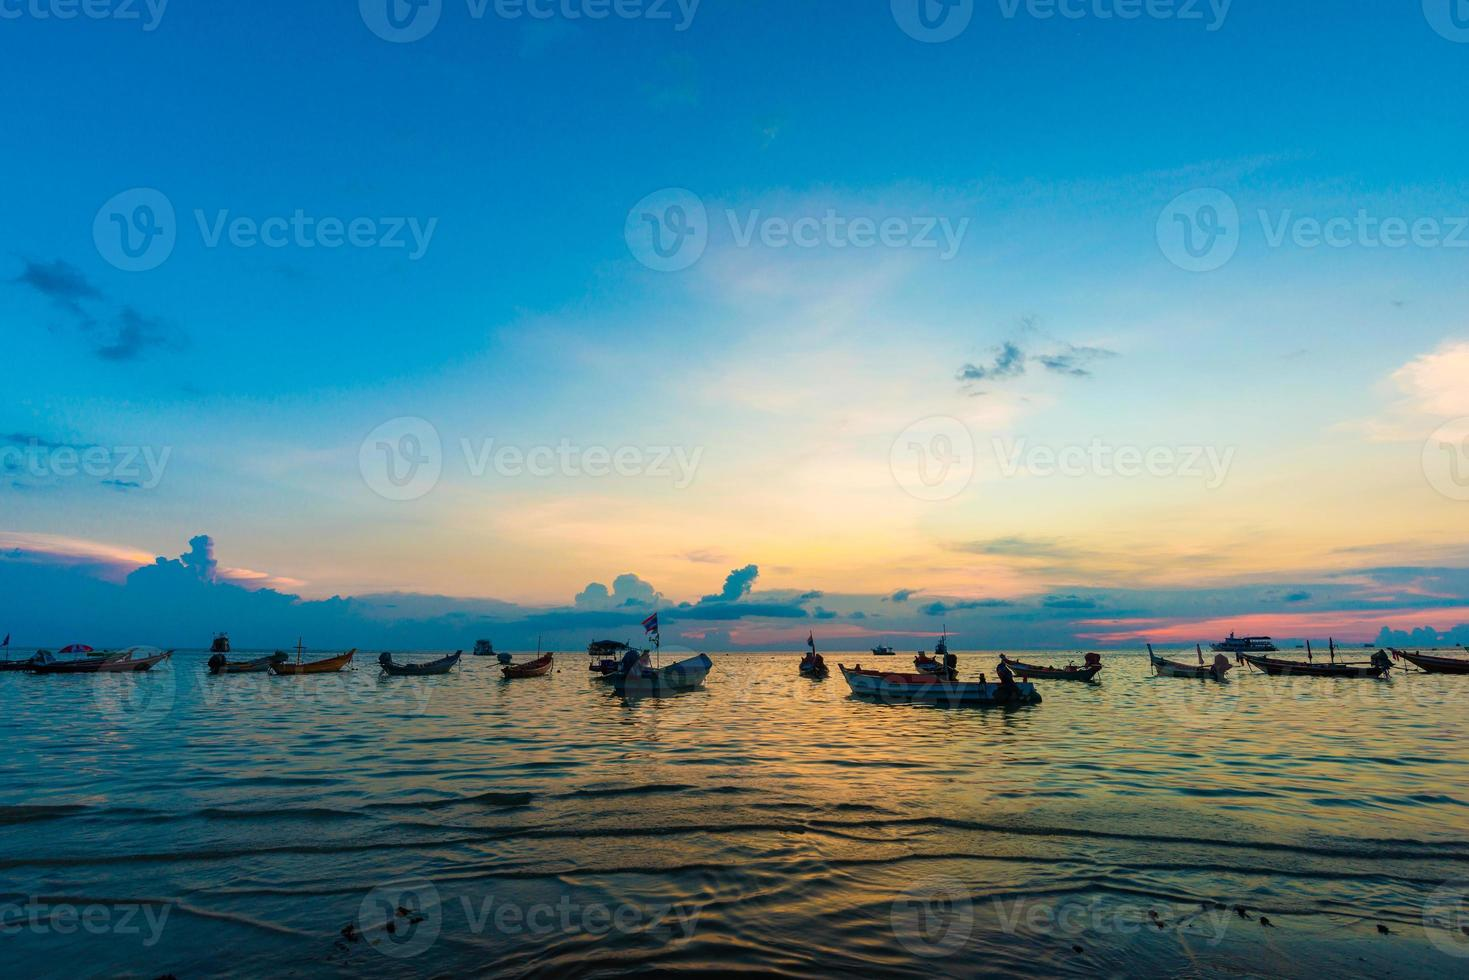 Sunset in the sea of Tao island with boat photo